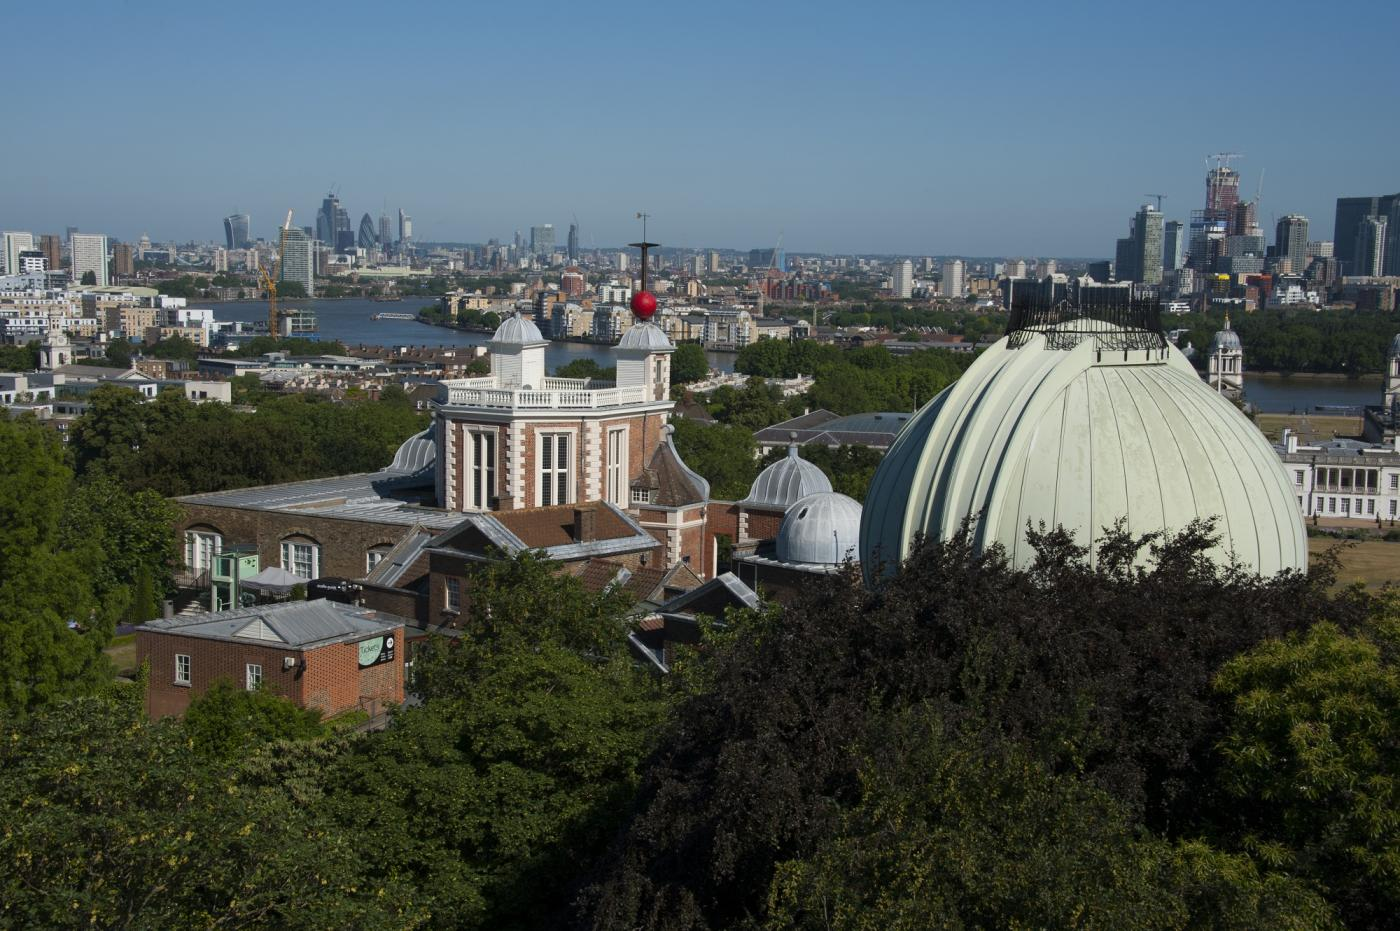 An image showing 'Royal Observatory Greenwich'